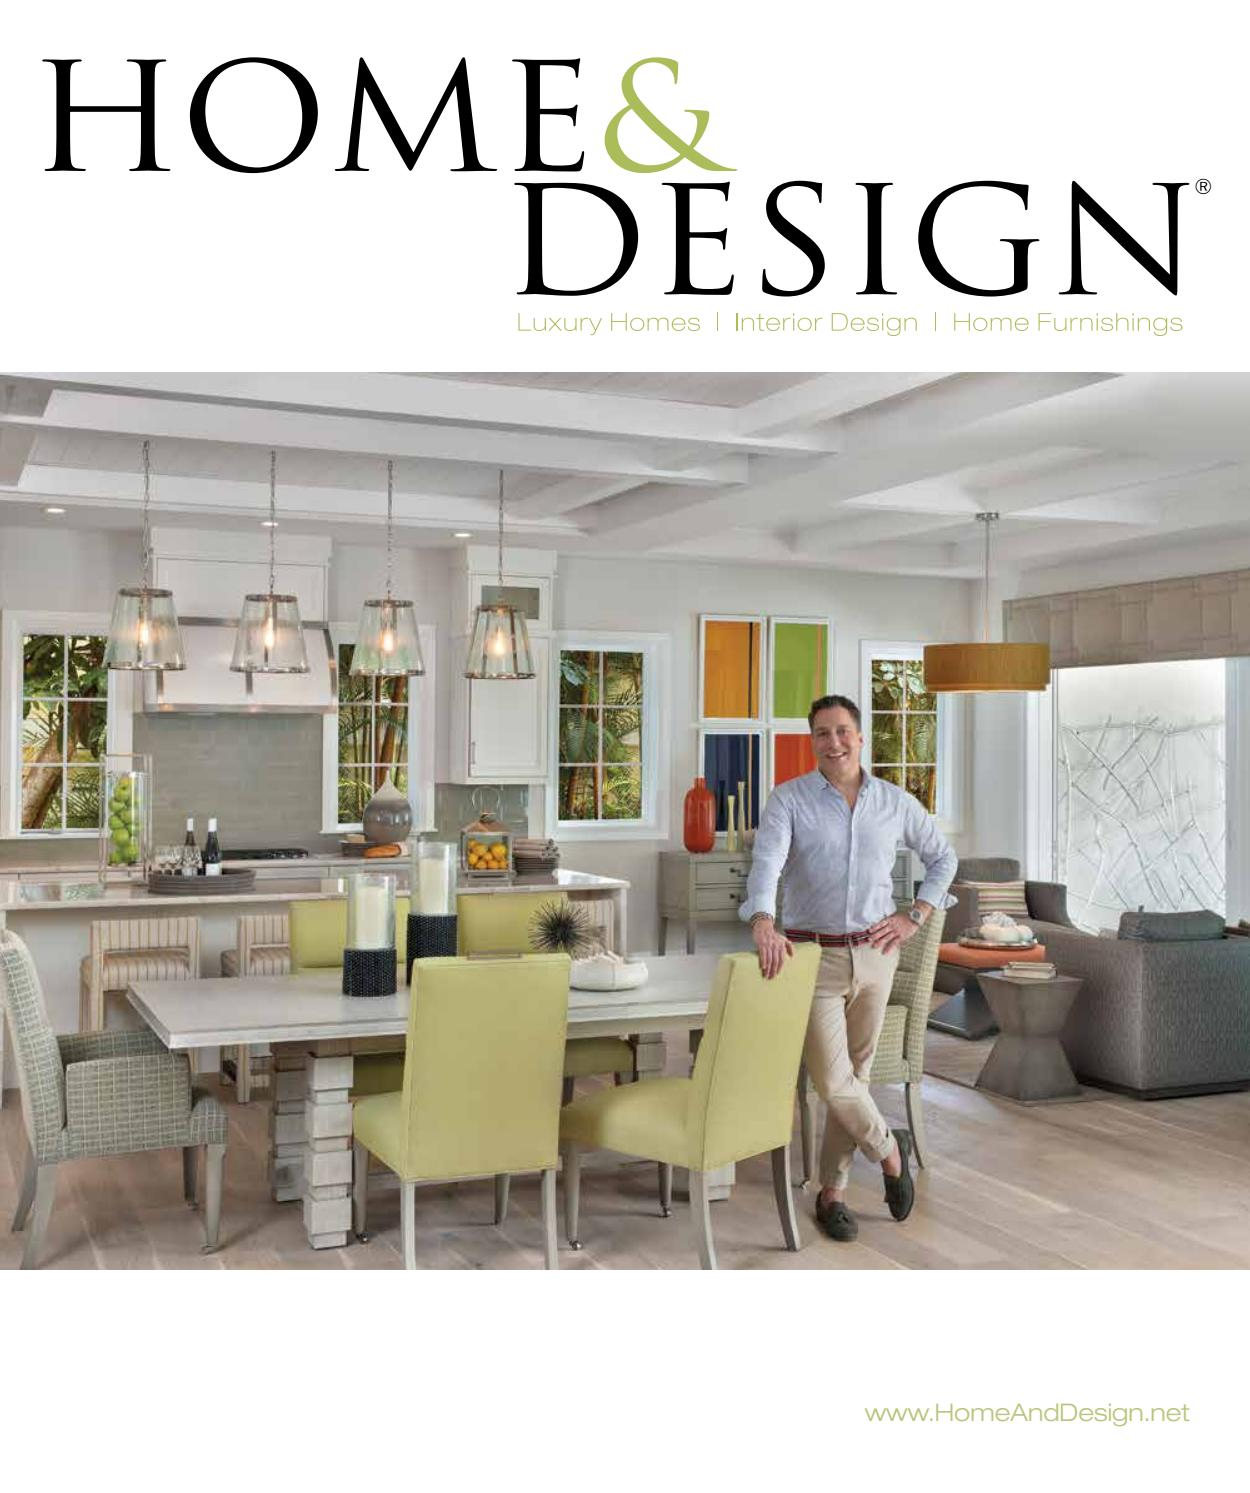 Home & Design Magazine 2016 Southwest Florida Edition by Anthony ...